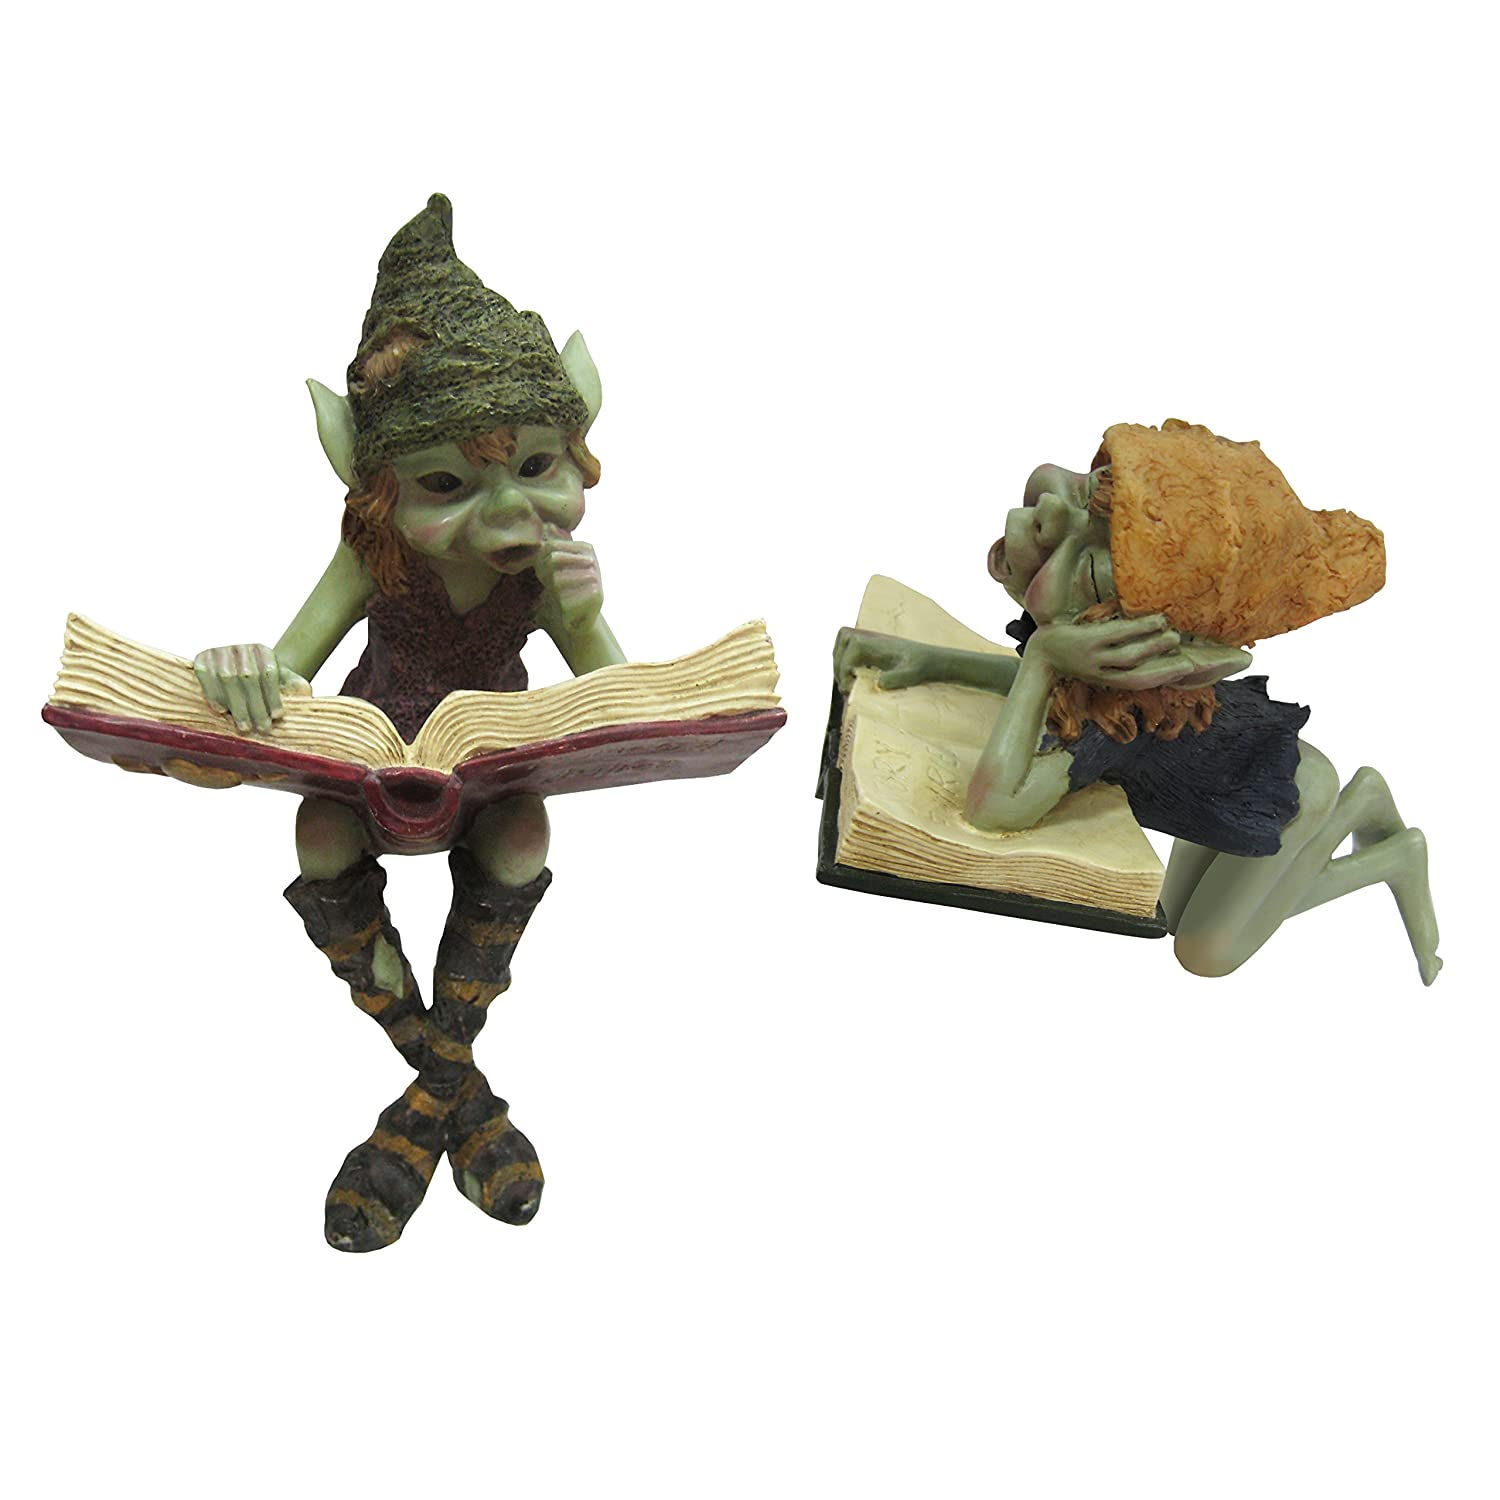 Anthony Fisher - 2 figuras de duendes leyendo para estante